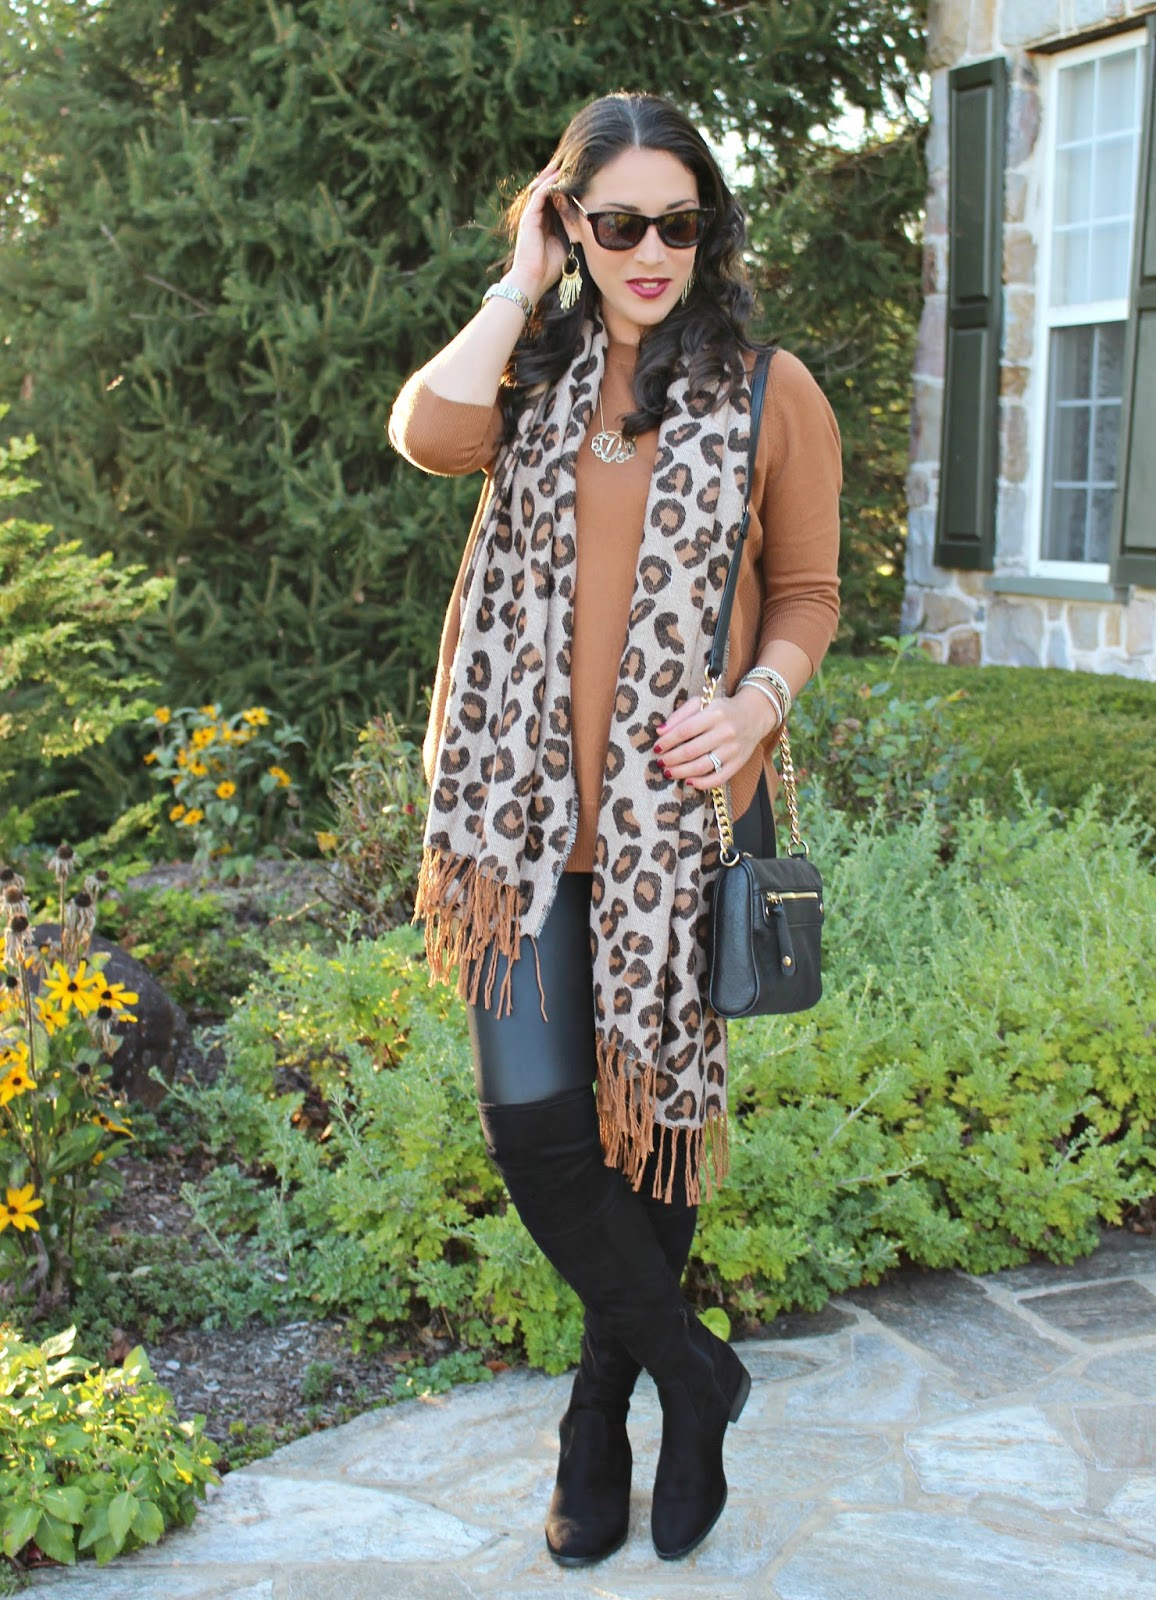 a12b30d71a I styled the tunic over my LOFT faux leather leggings. I sometimes like to  mix brown and black